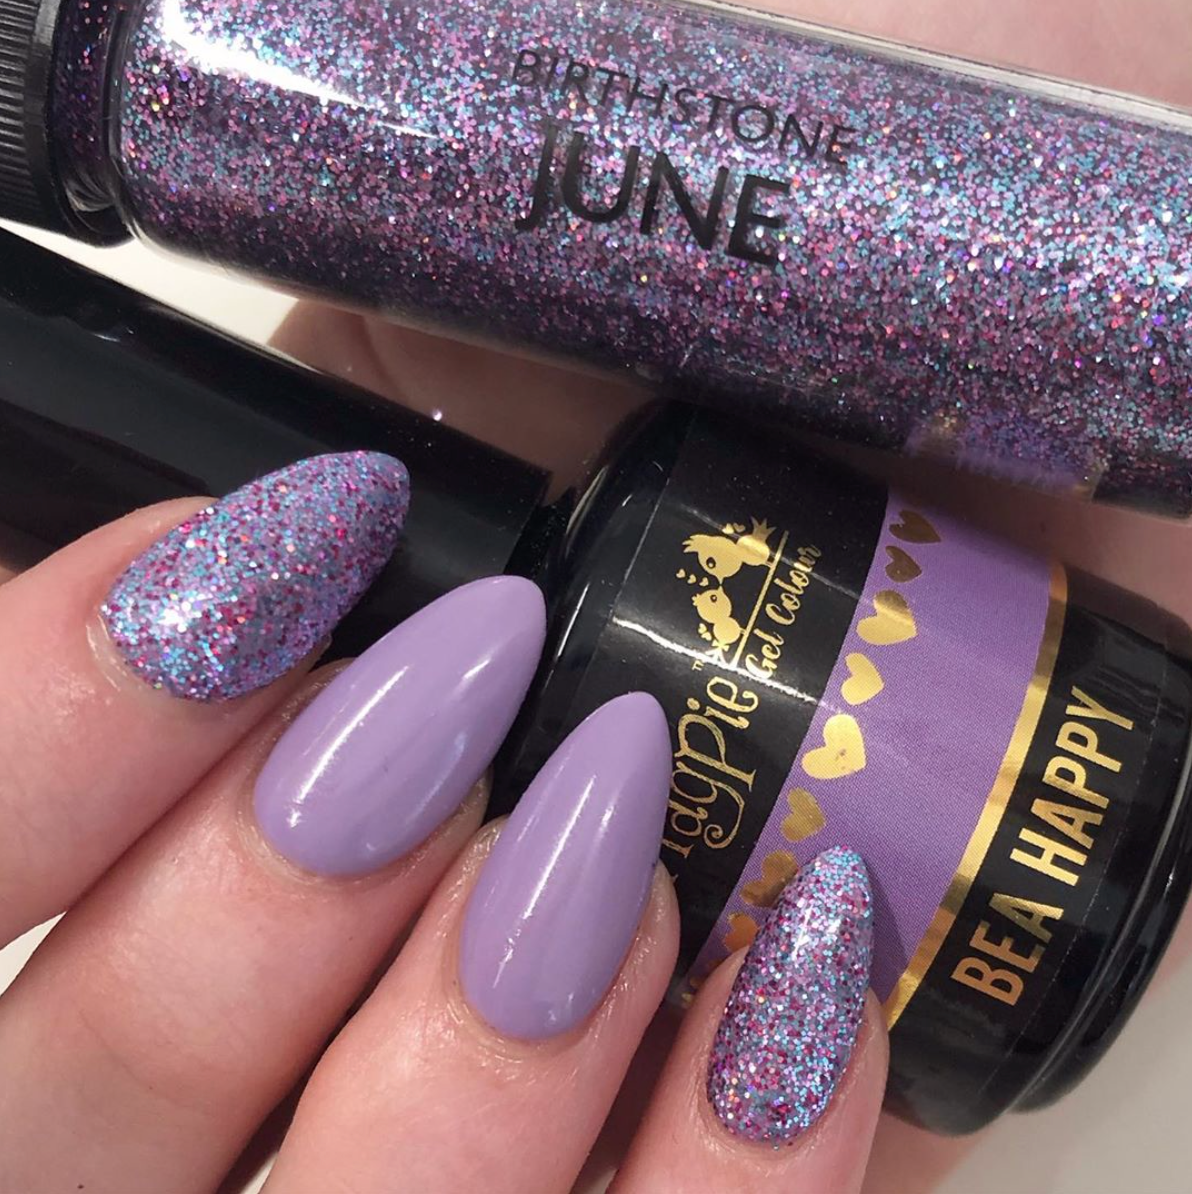 Birthstone June Glitter